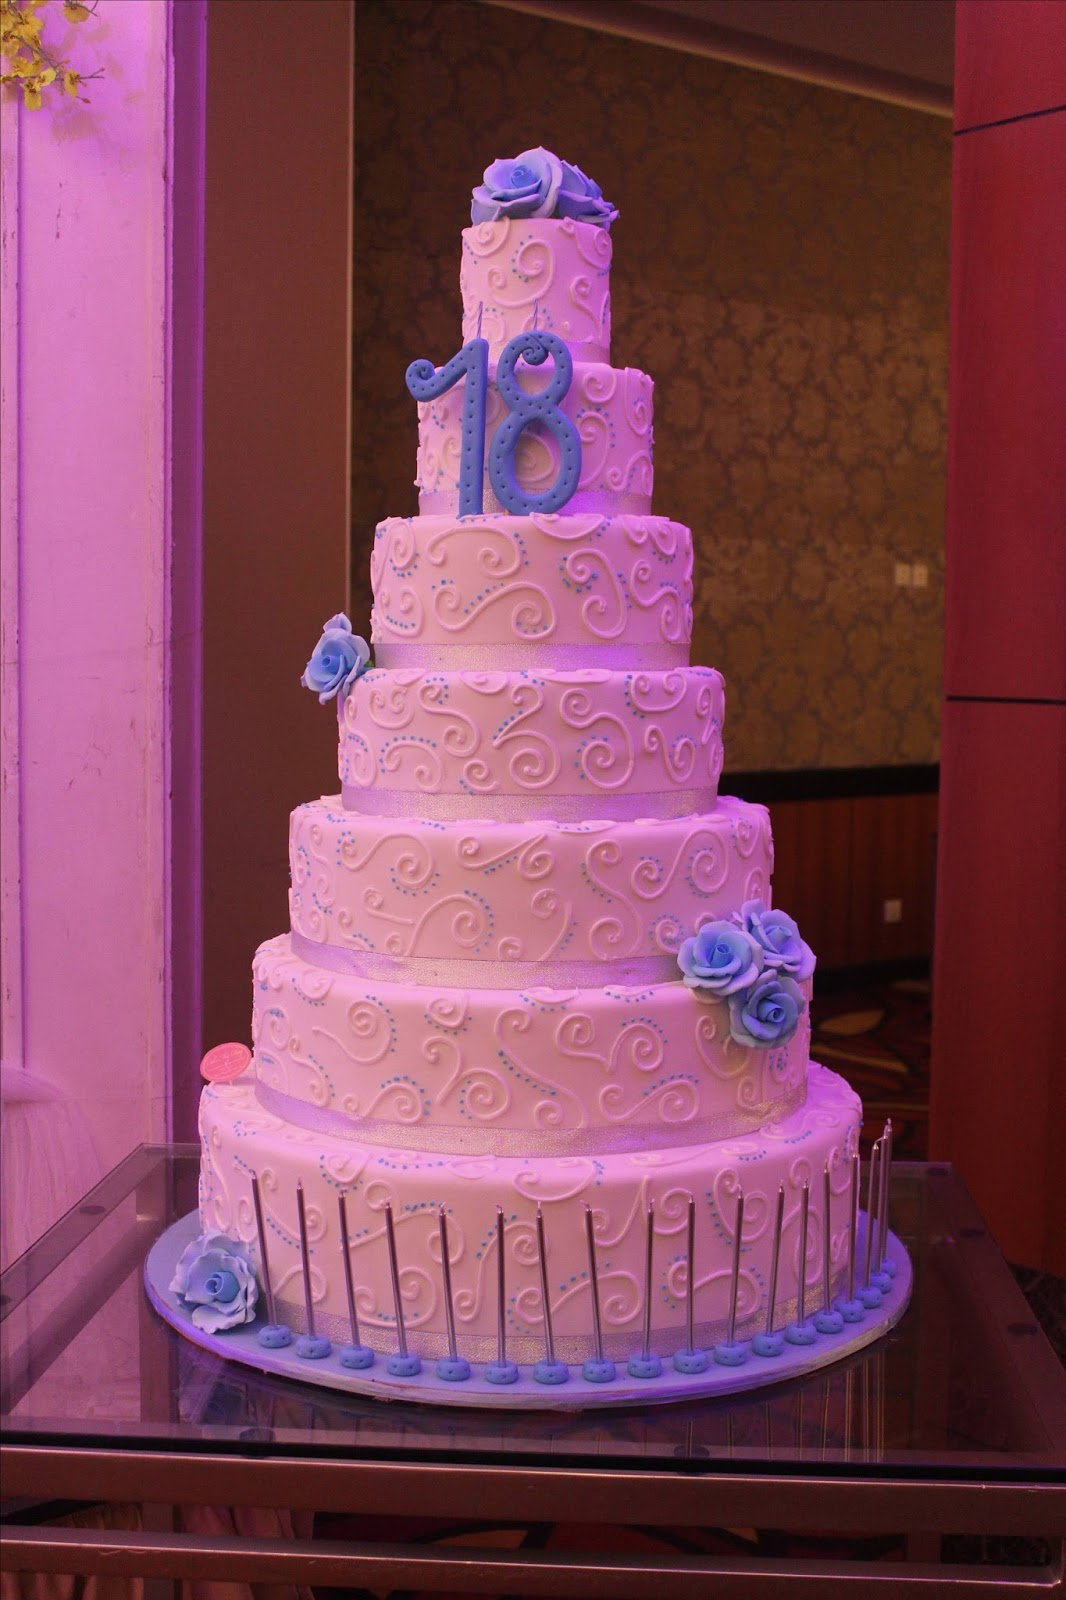 Bakers Plaza Cakes Design